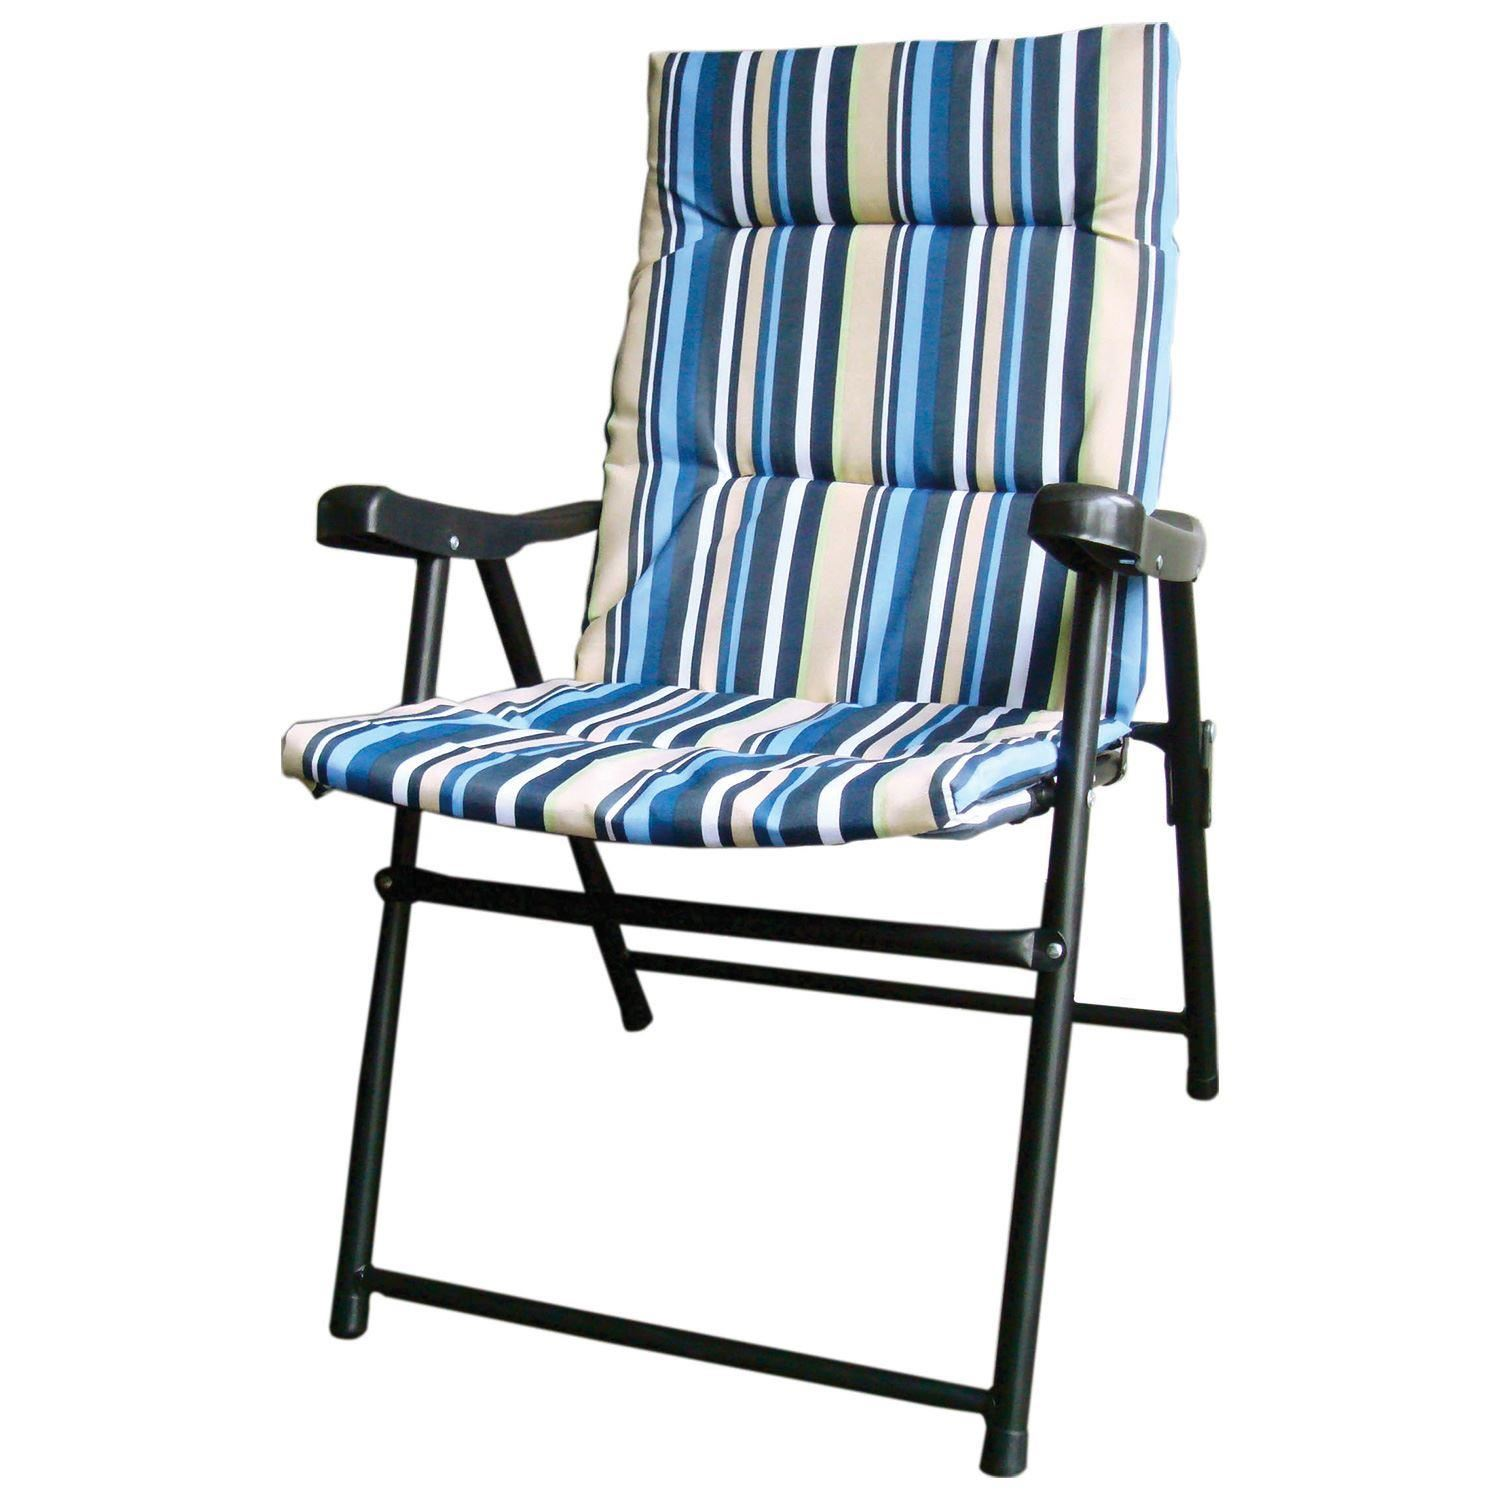 2 X Striped Padded Folding Outdoor Garden Camping Picnic